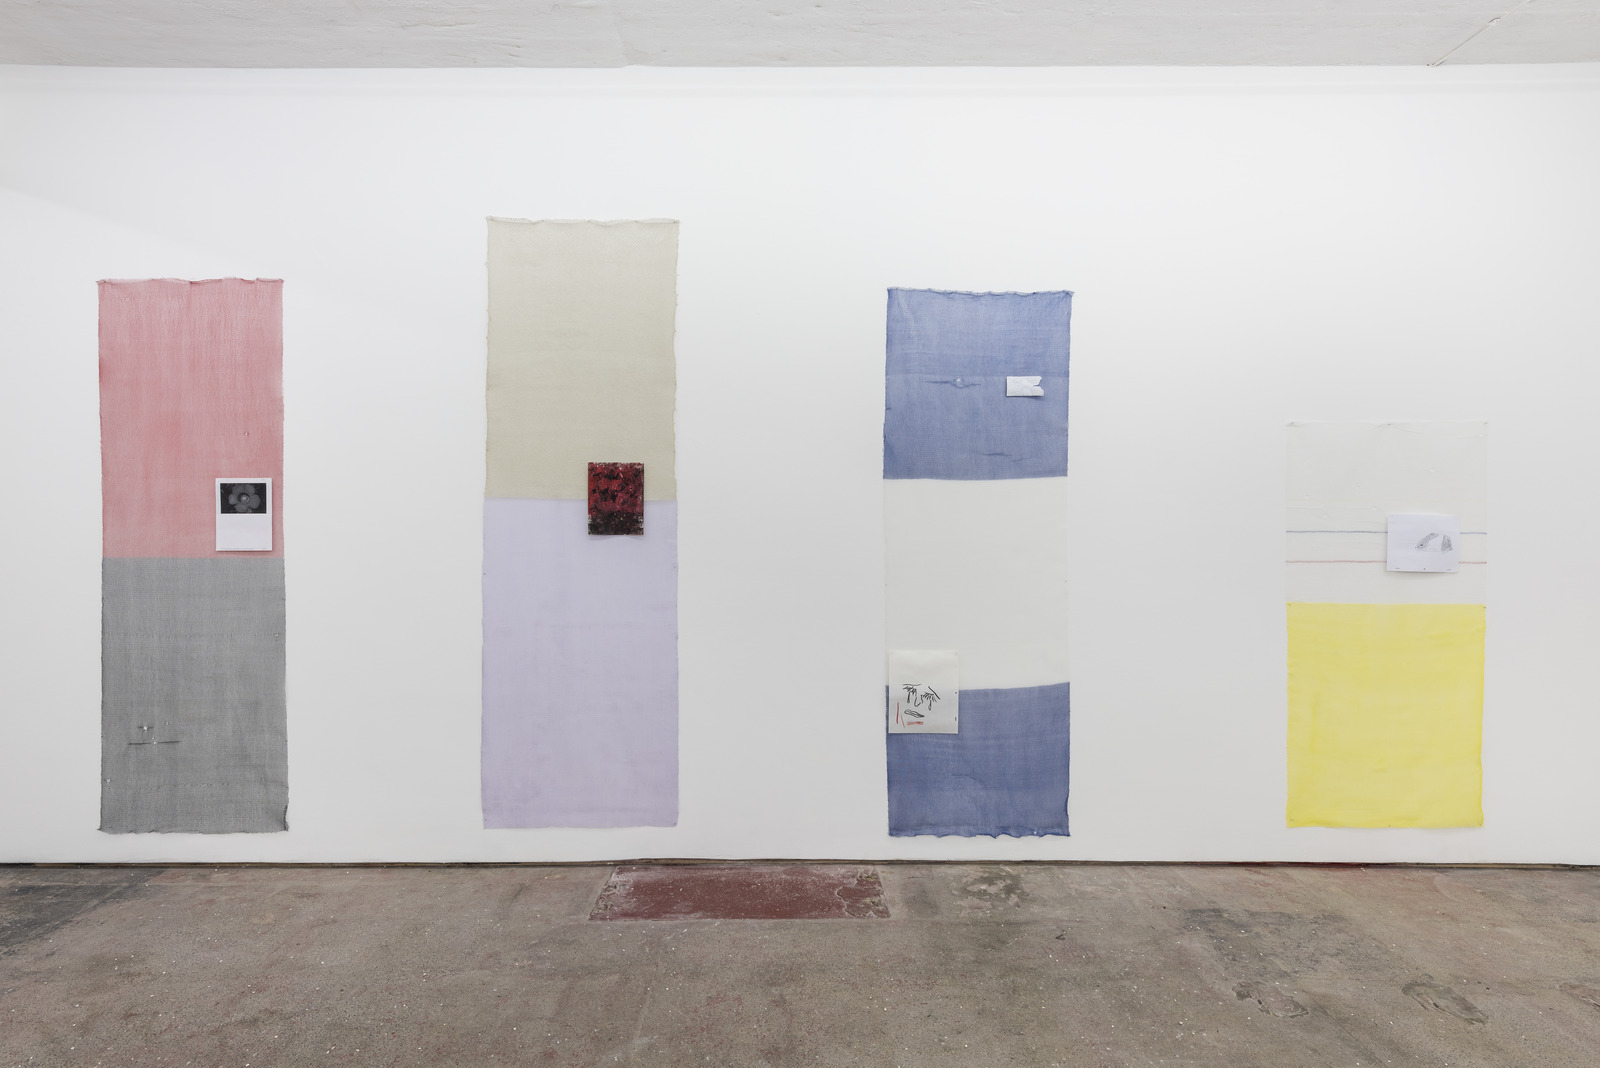 Luis Miguel Bendaña, Installation view